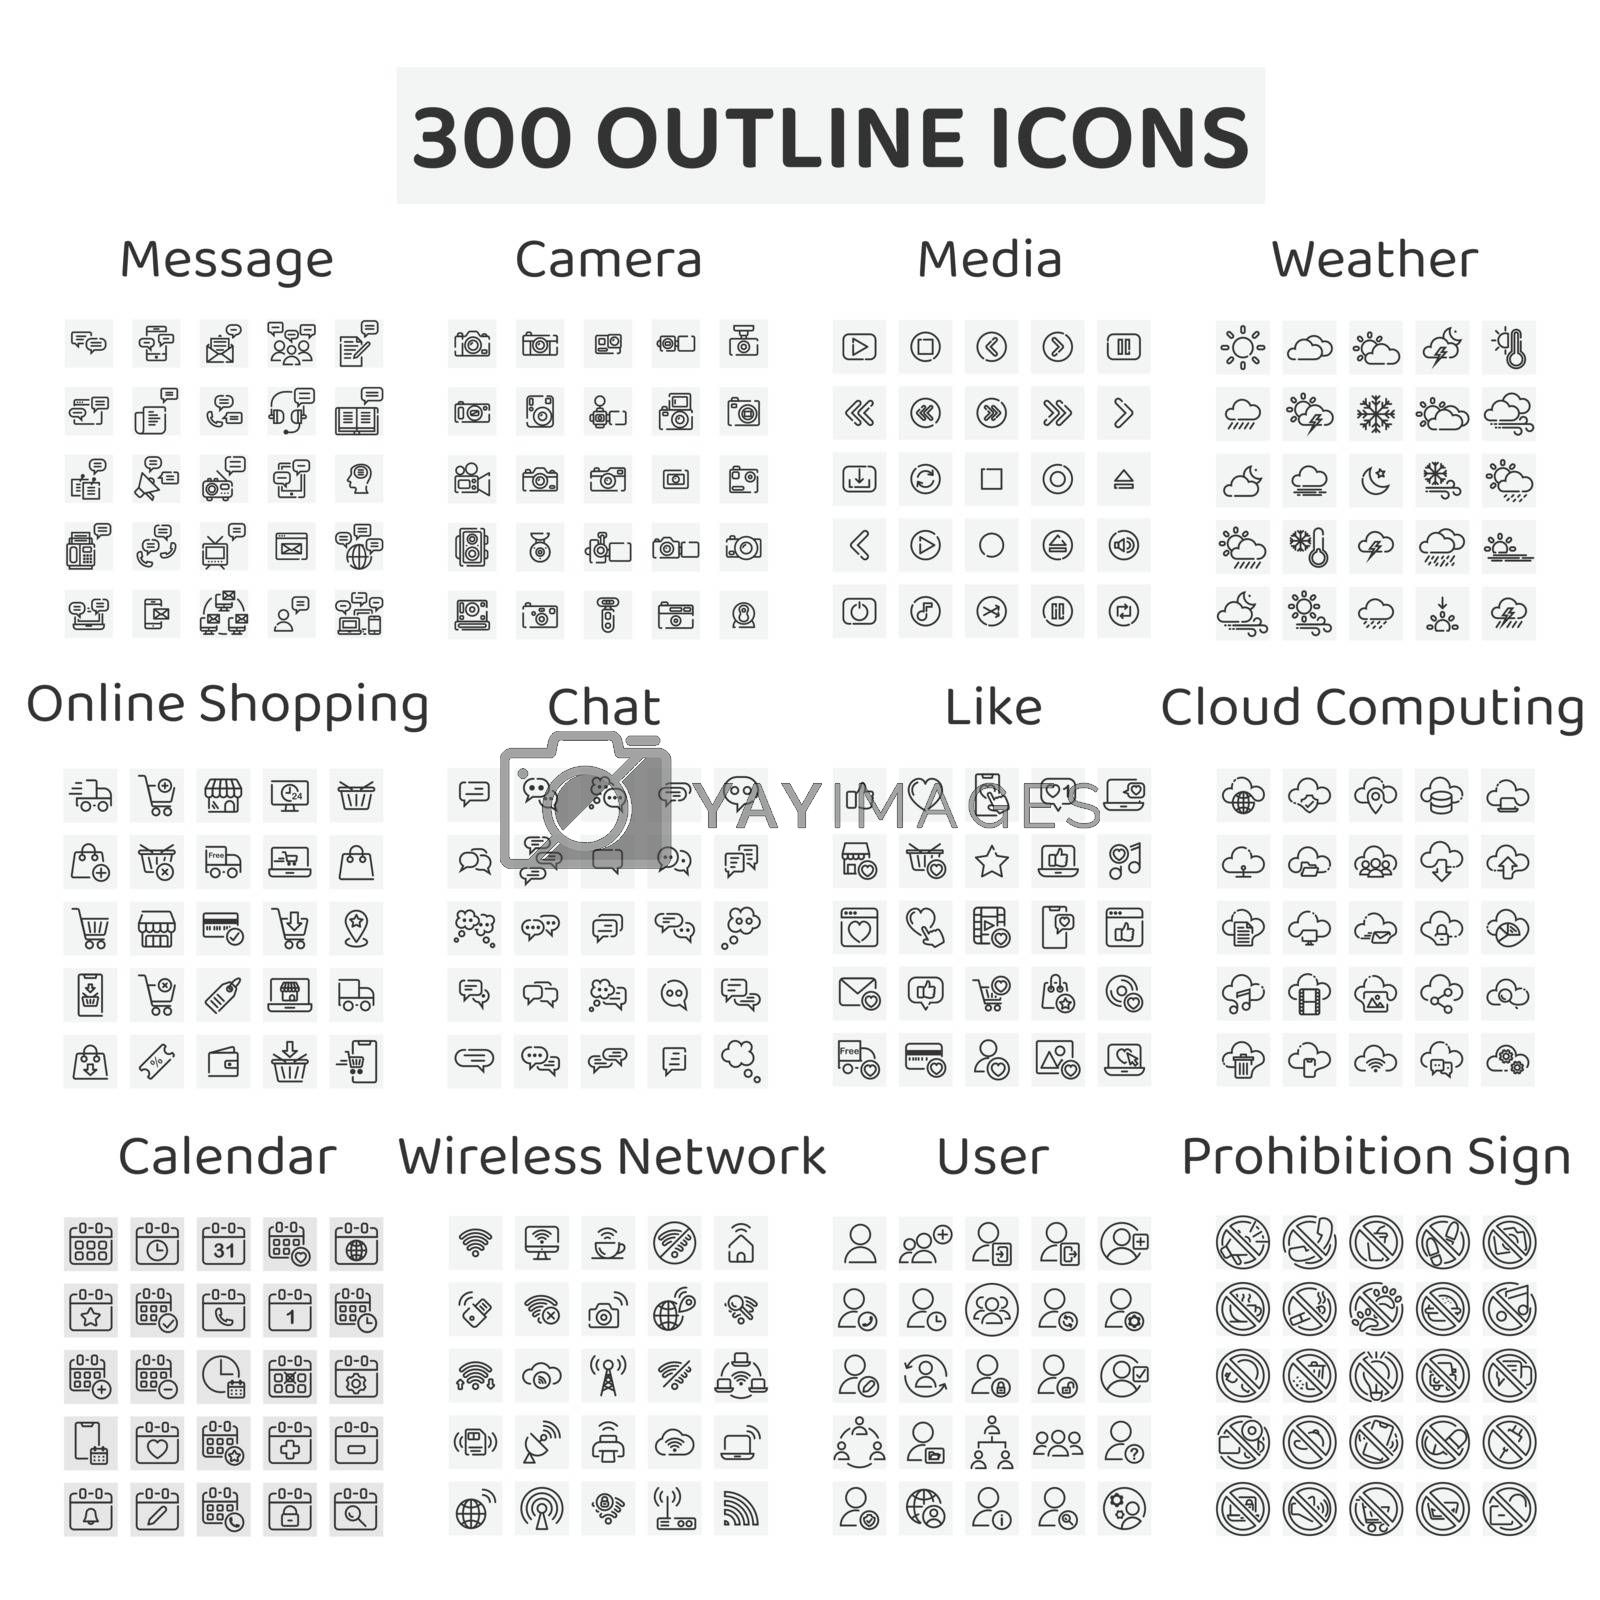 Set of 300 outline icons : message ,camera ,media ,weather ,online shopping , chat ,like ,cloud computing ,calendar ,wireless network ,user ,prohibition sign.